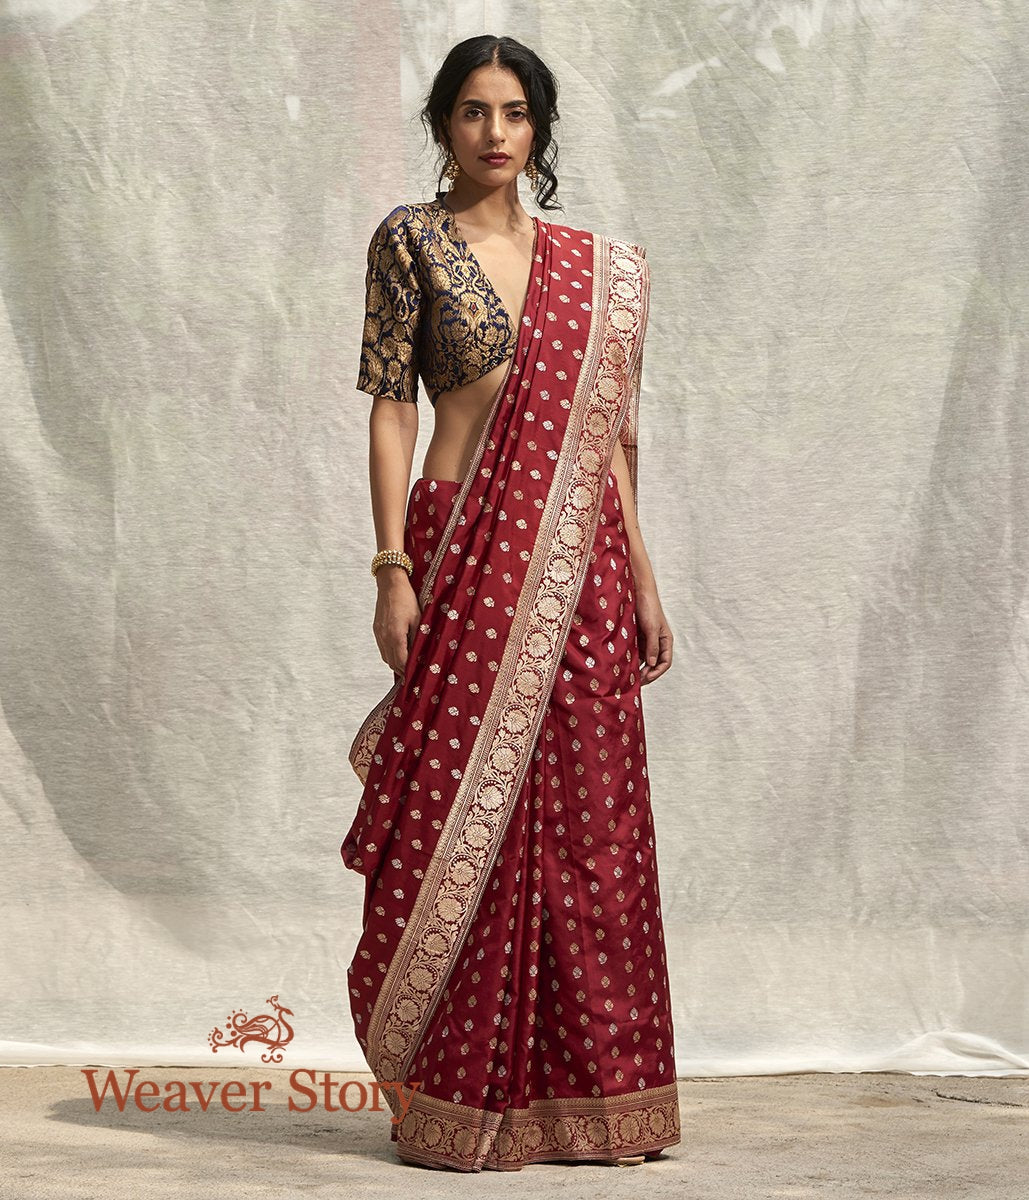 Handwoven Wine Banarasi Saree with Kadhwa Booti and Floral Border Woven in Gold Zari